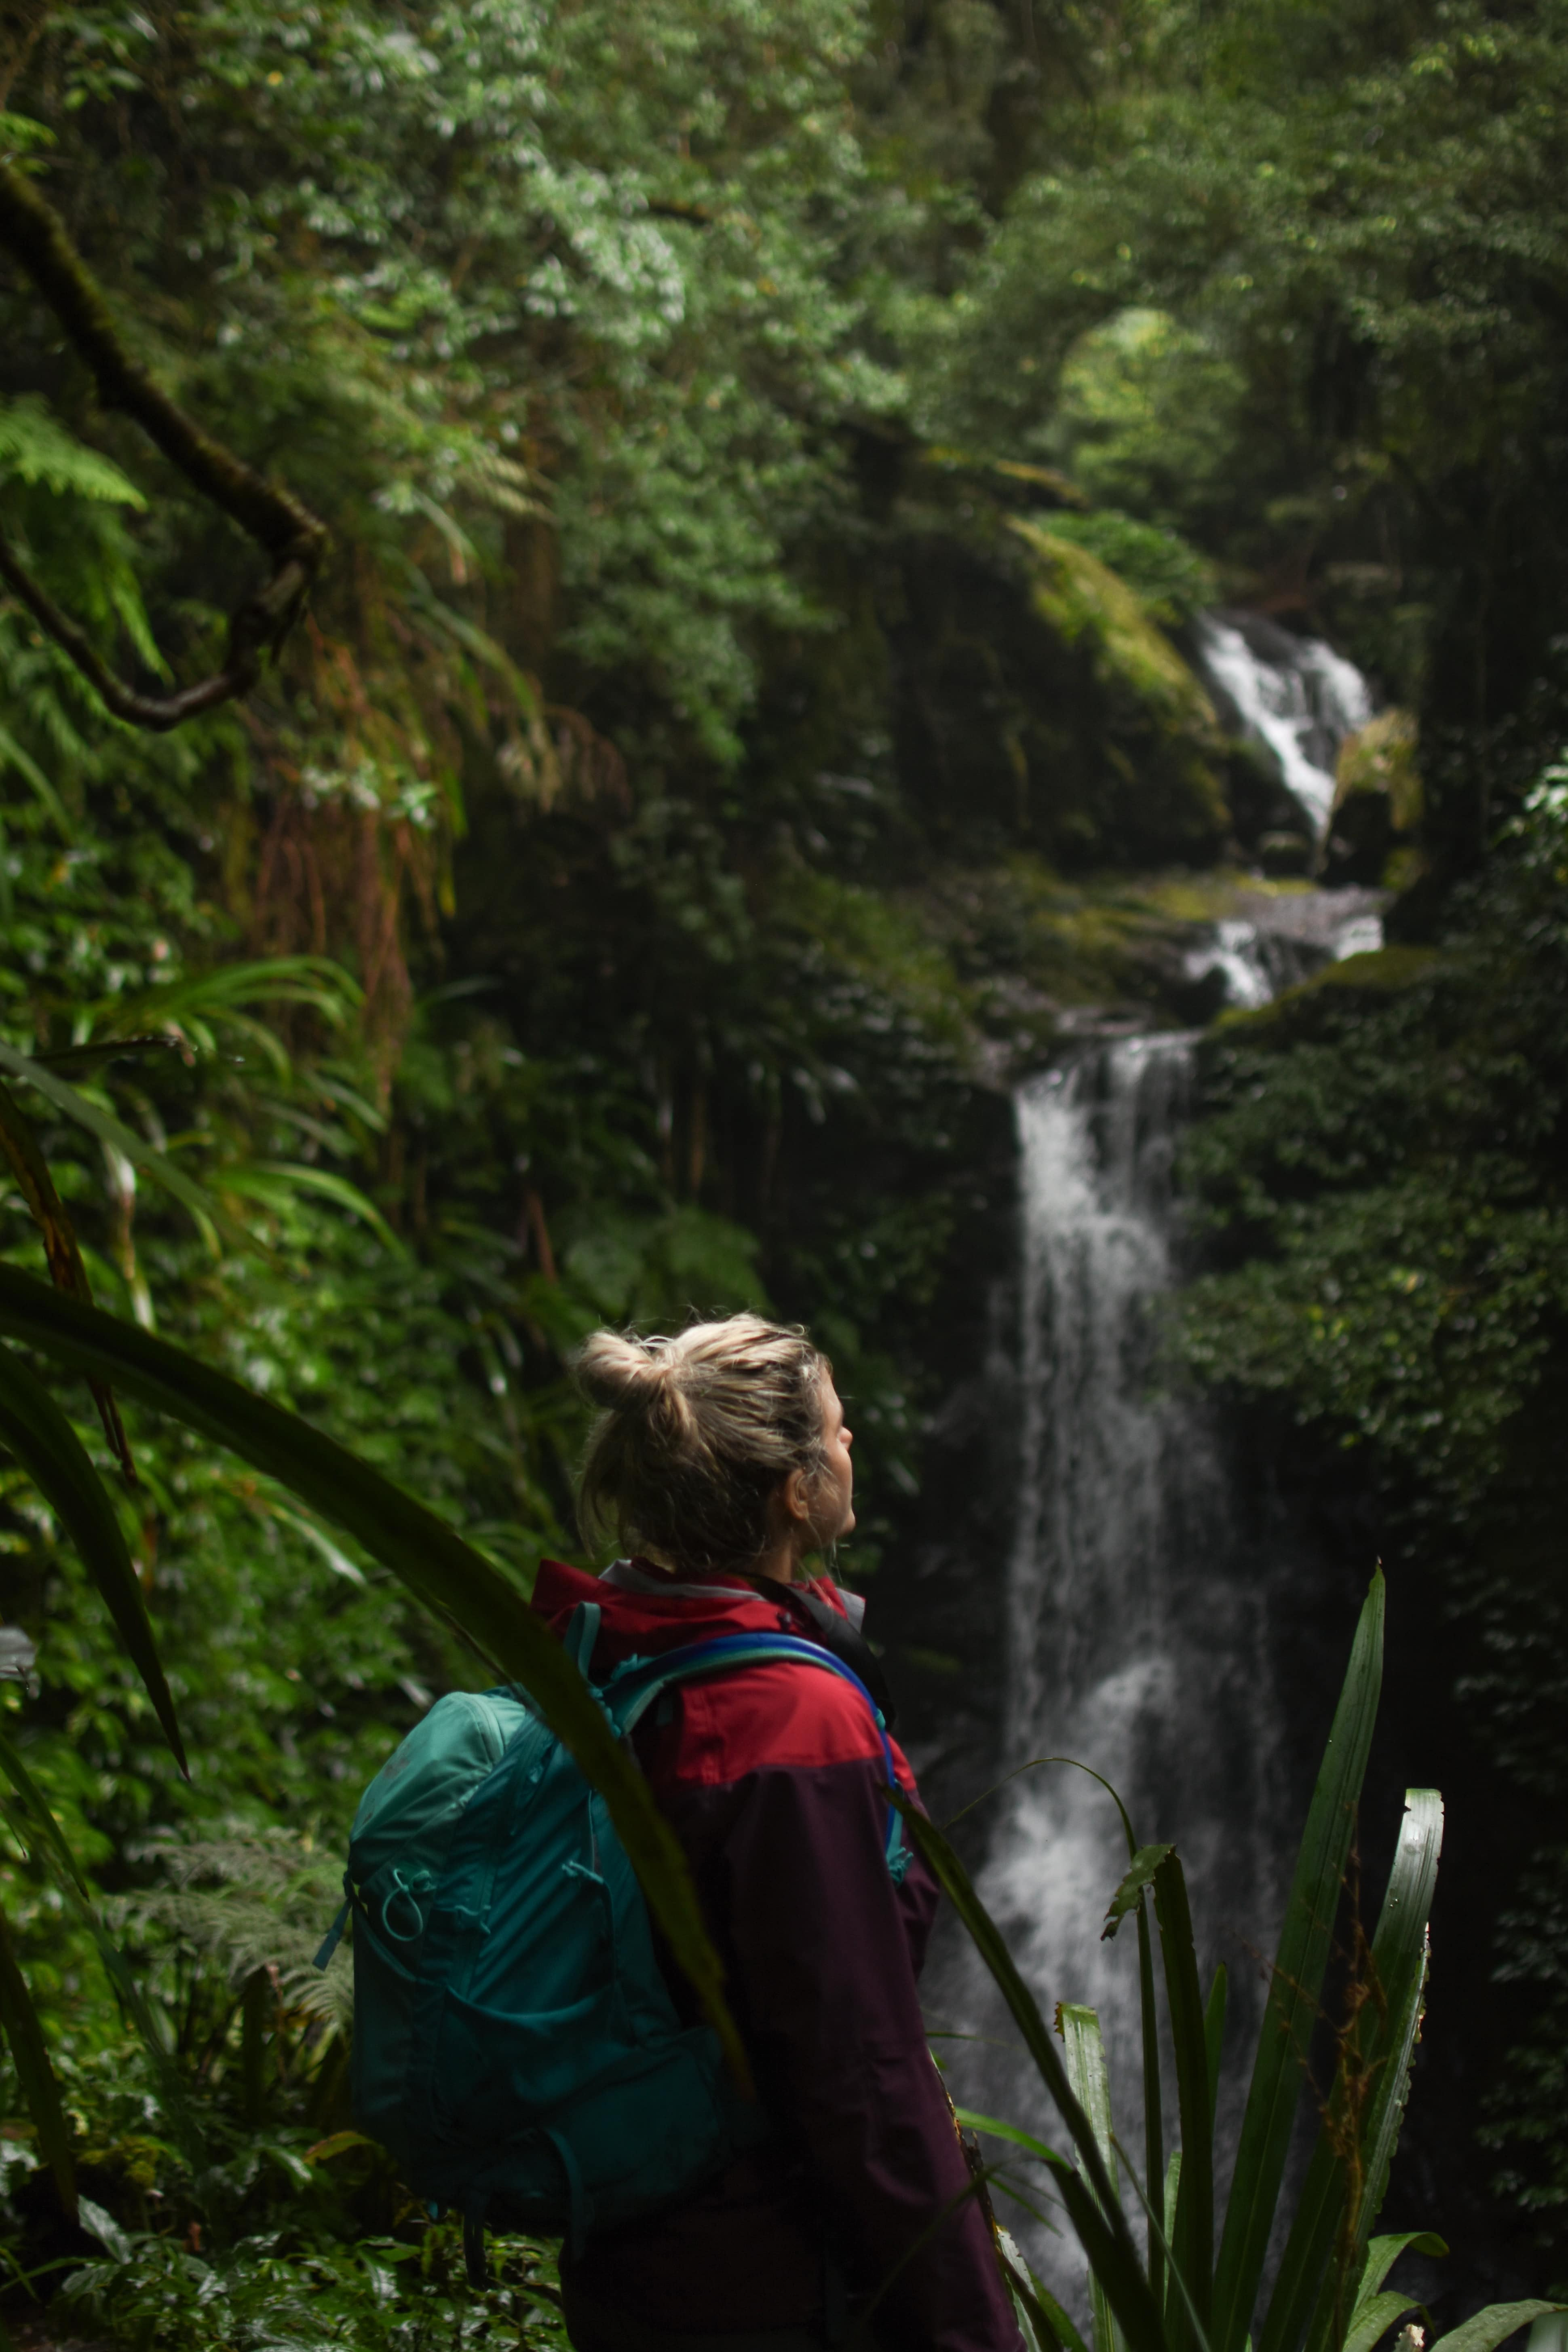 Girl looking out at waterfall on a wet, foggy day in a rainforest